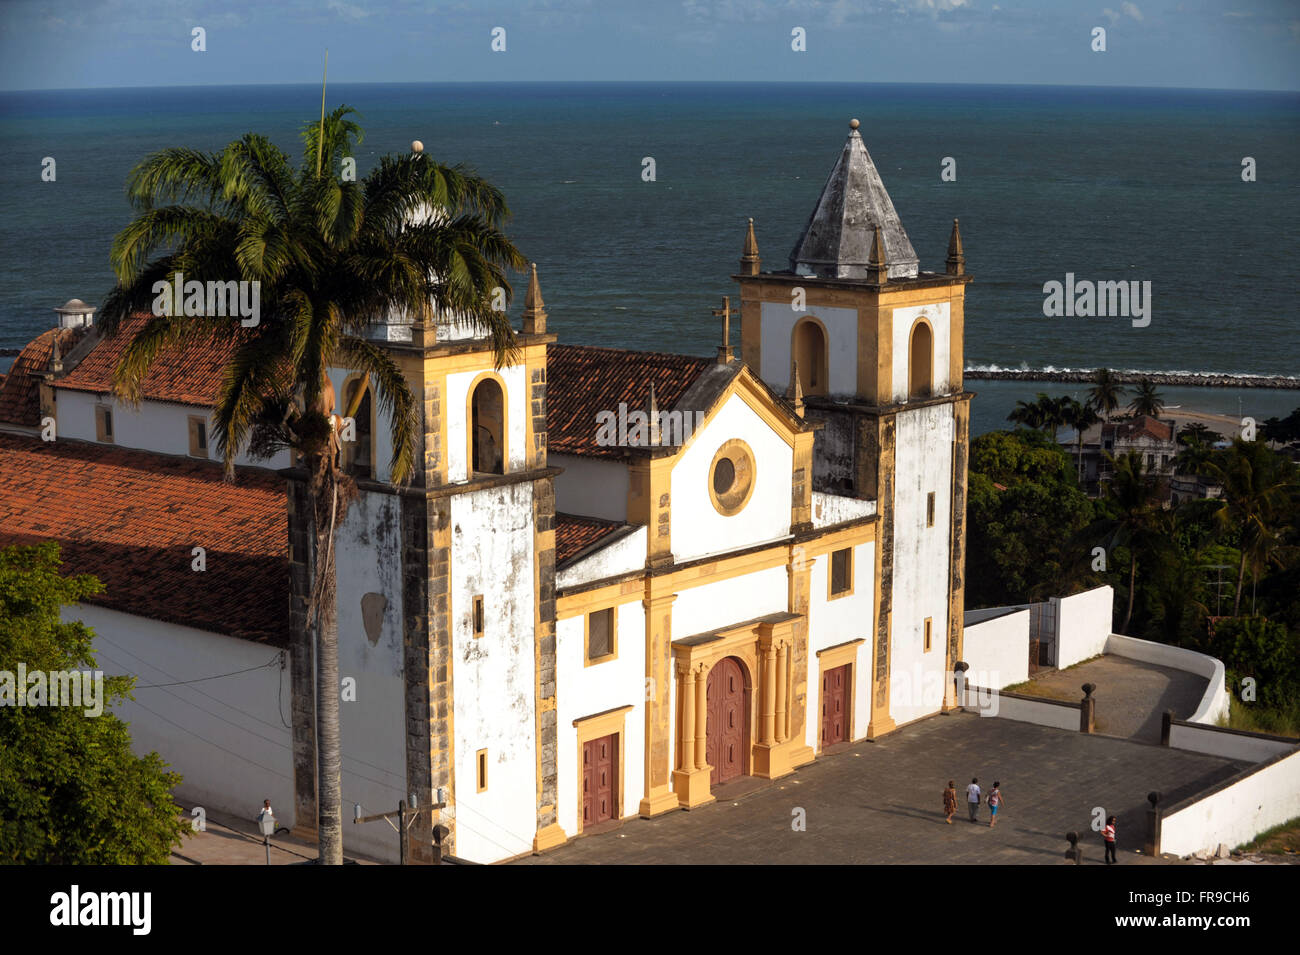 View from Largo da Se with Church of Sao Salvador do Mundo and sea in the background in the city of Olinda - PE Stock Photo